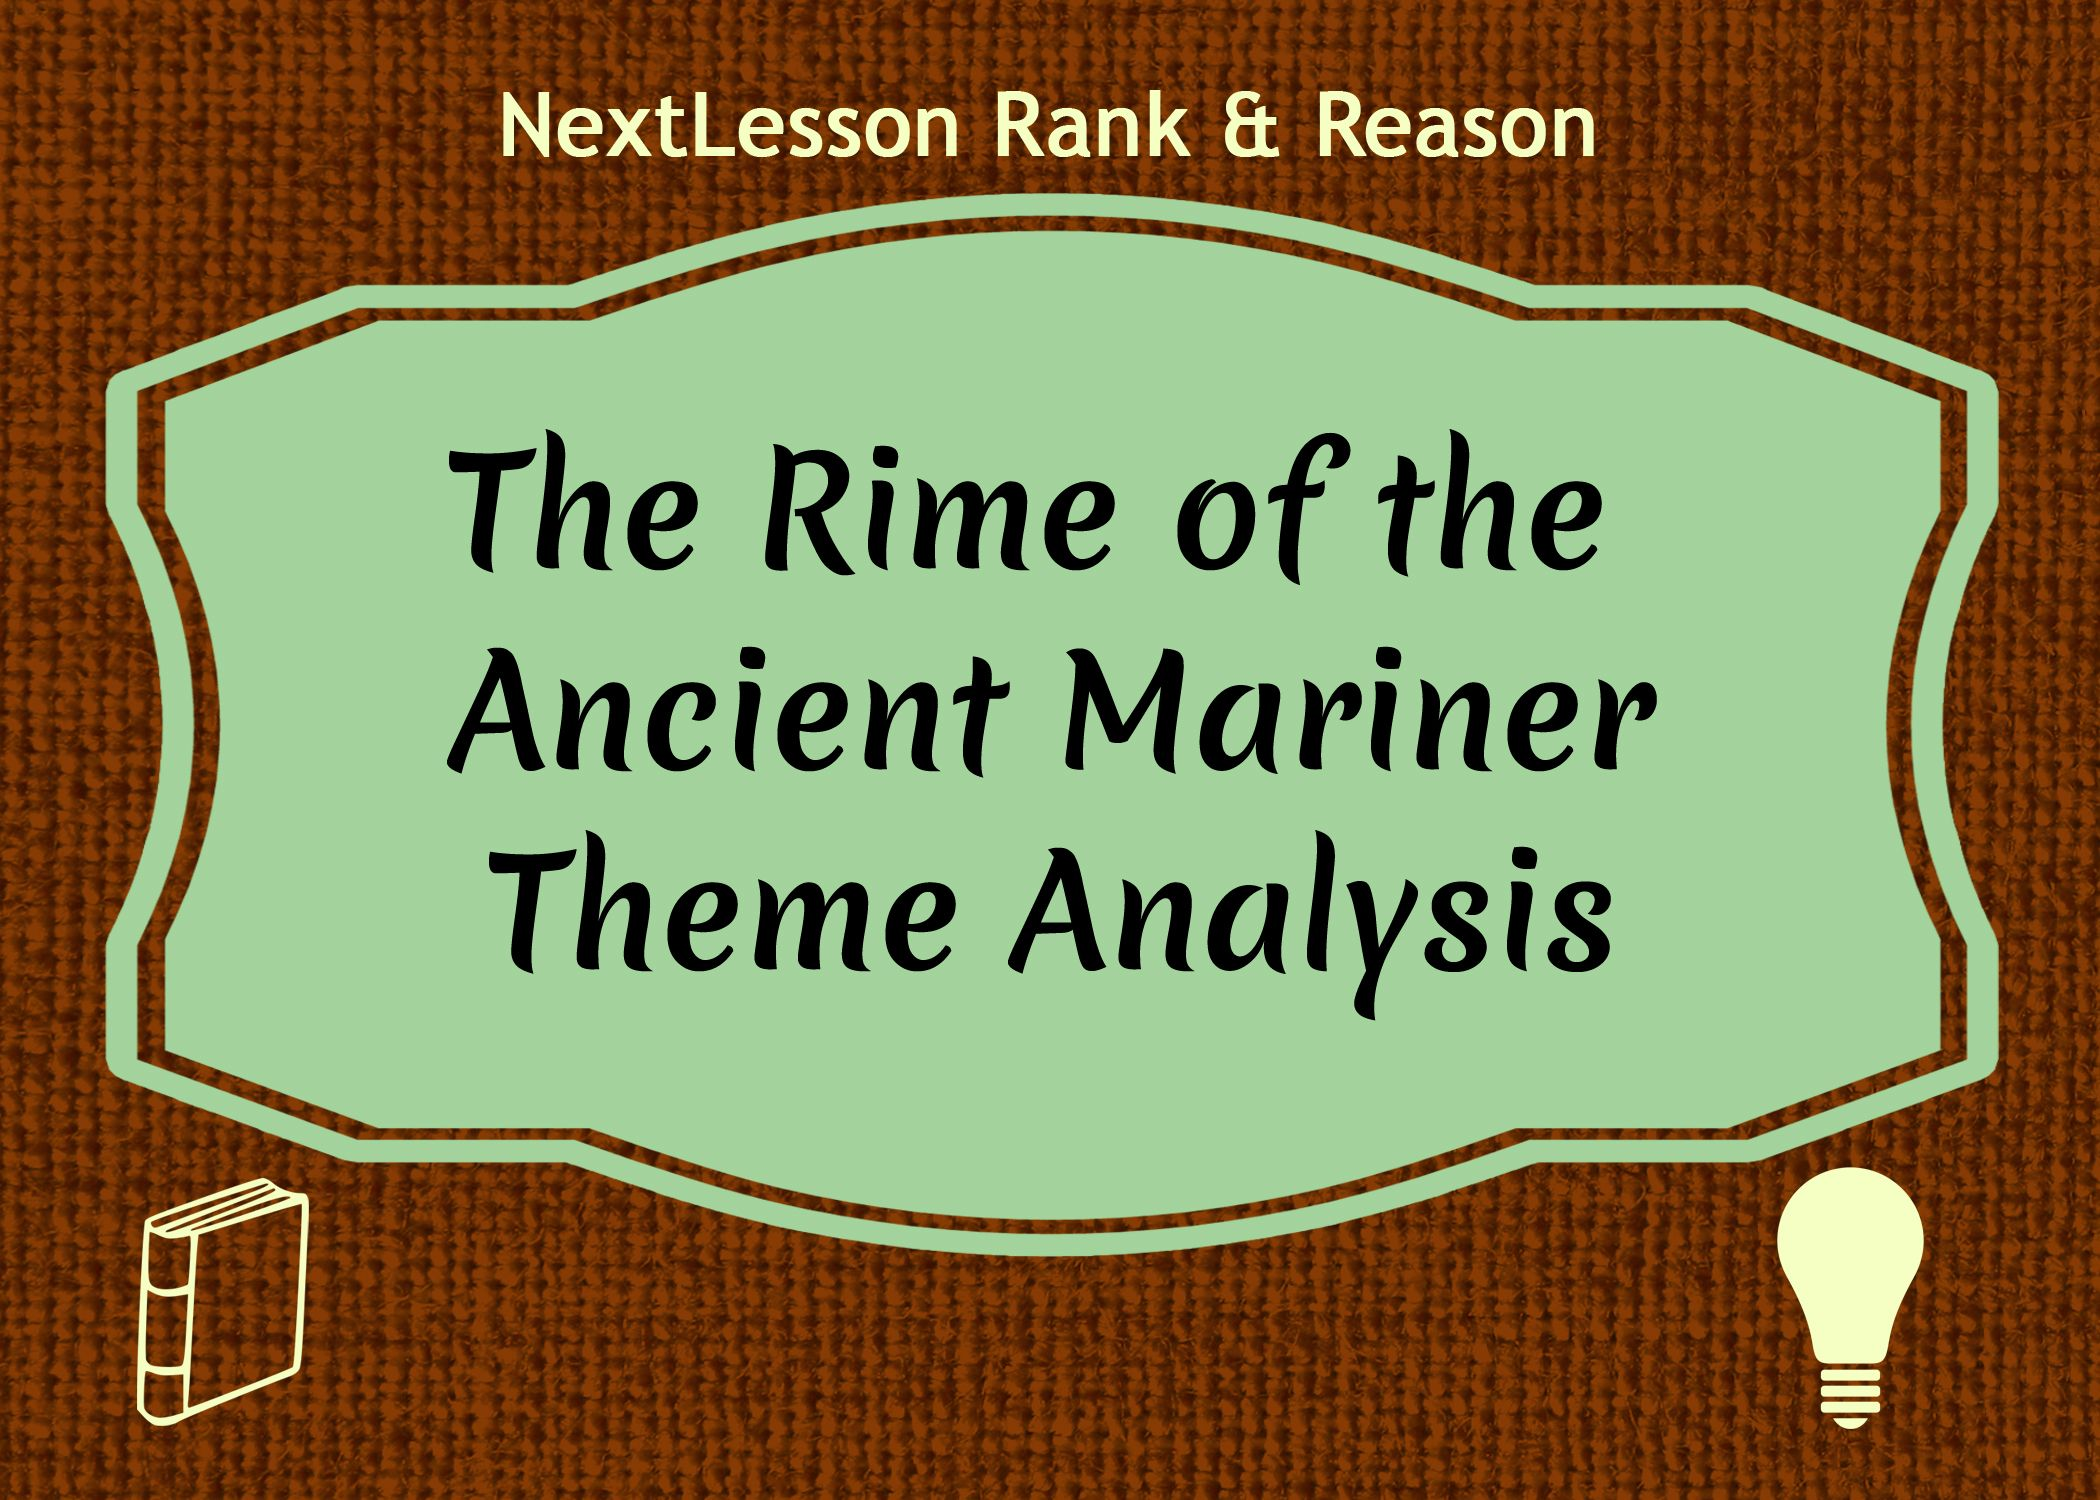 The rime of the ancient mariner theme analysis critical thinking analyze symbols used in poetry with this free lesson on the rime of the ancient mariner biocorpaavc Images